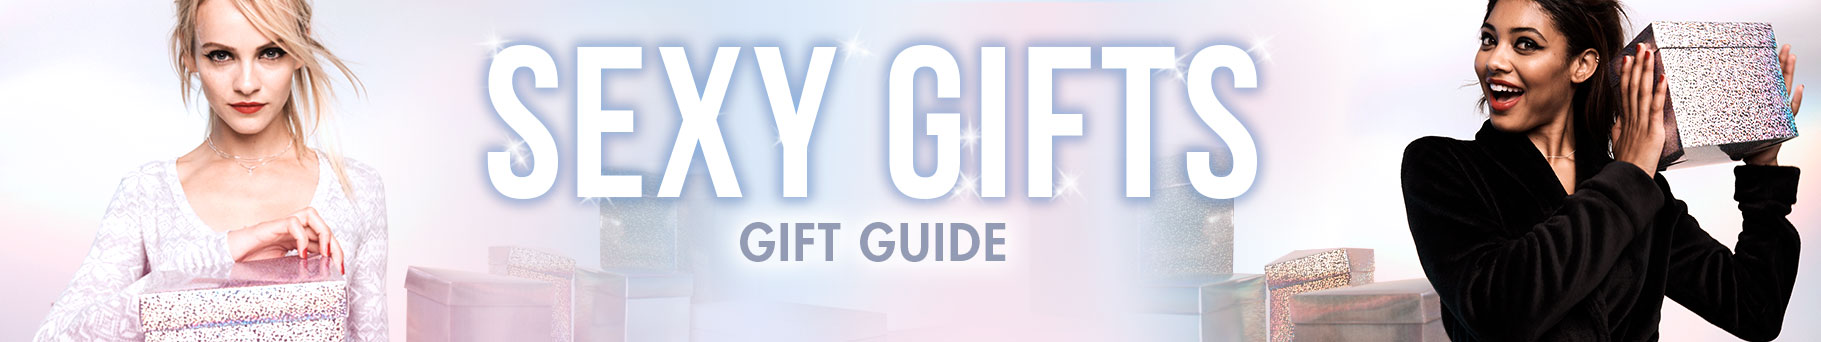 Sexy gifts gift guide.